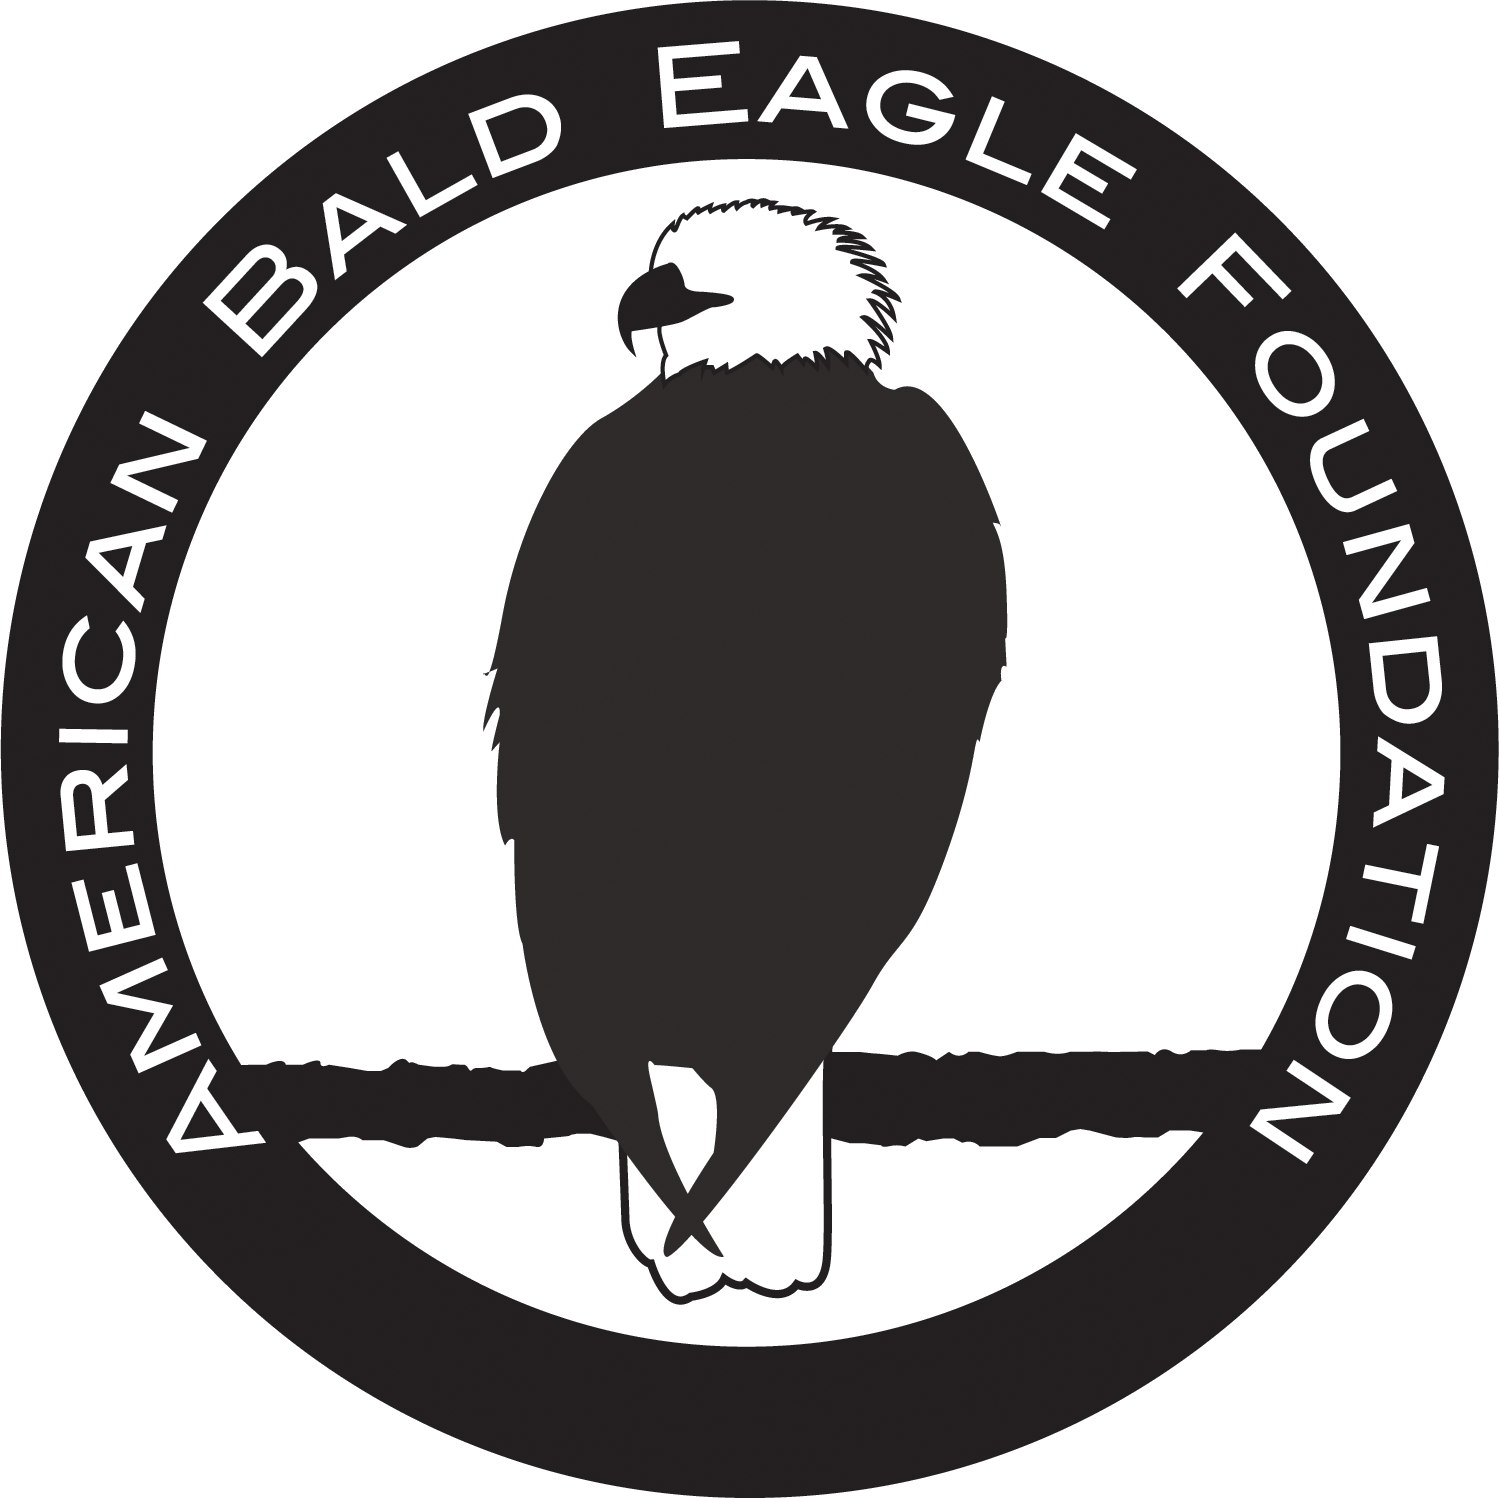 American Bald Eagle Foundation